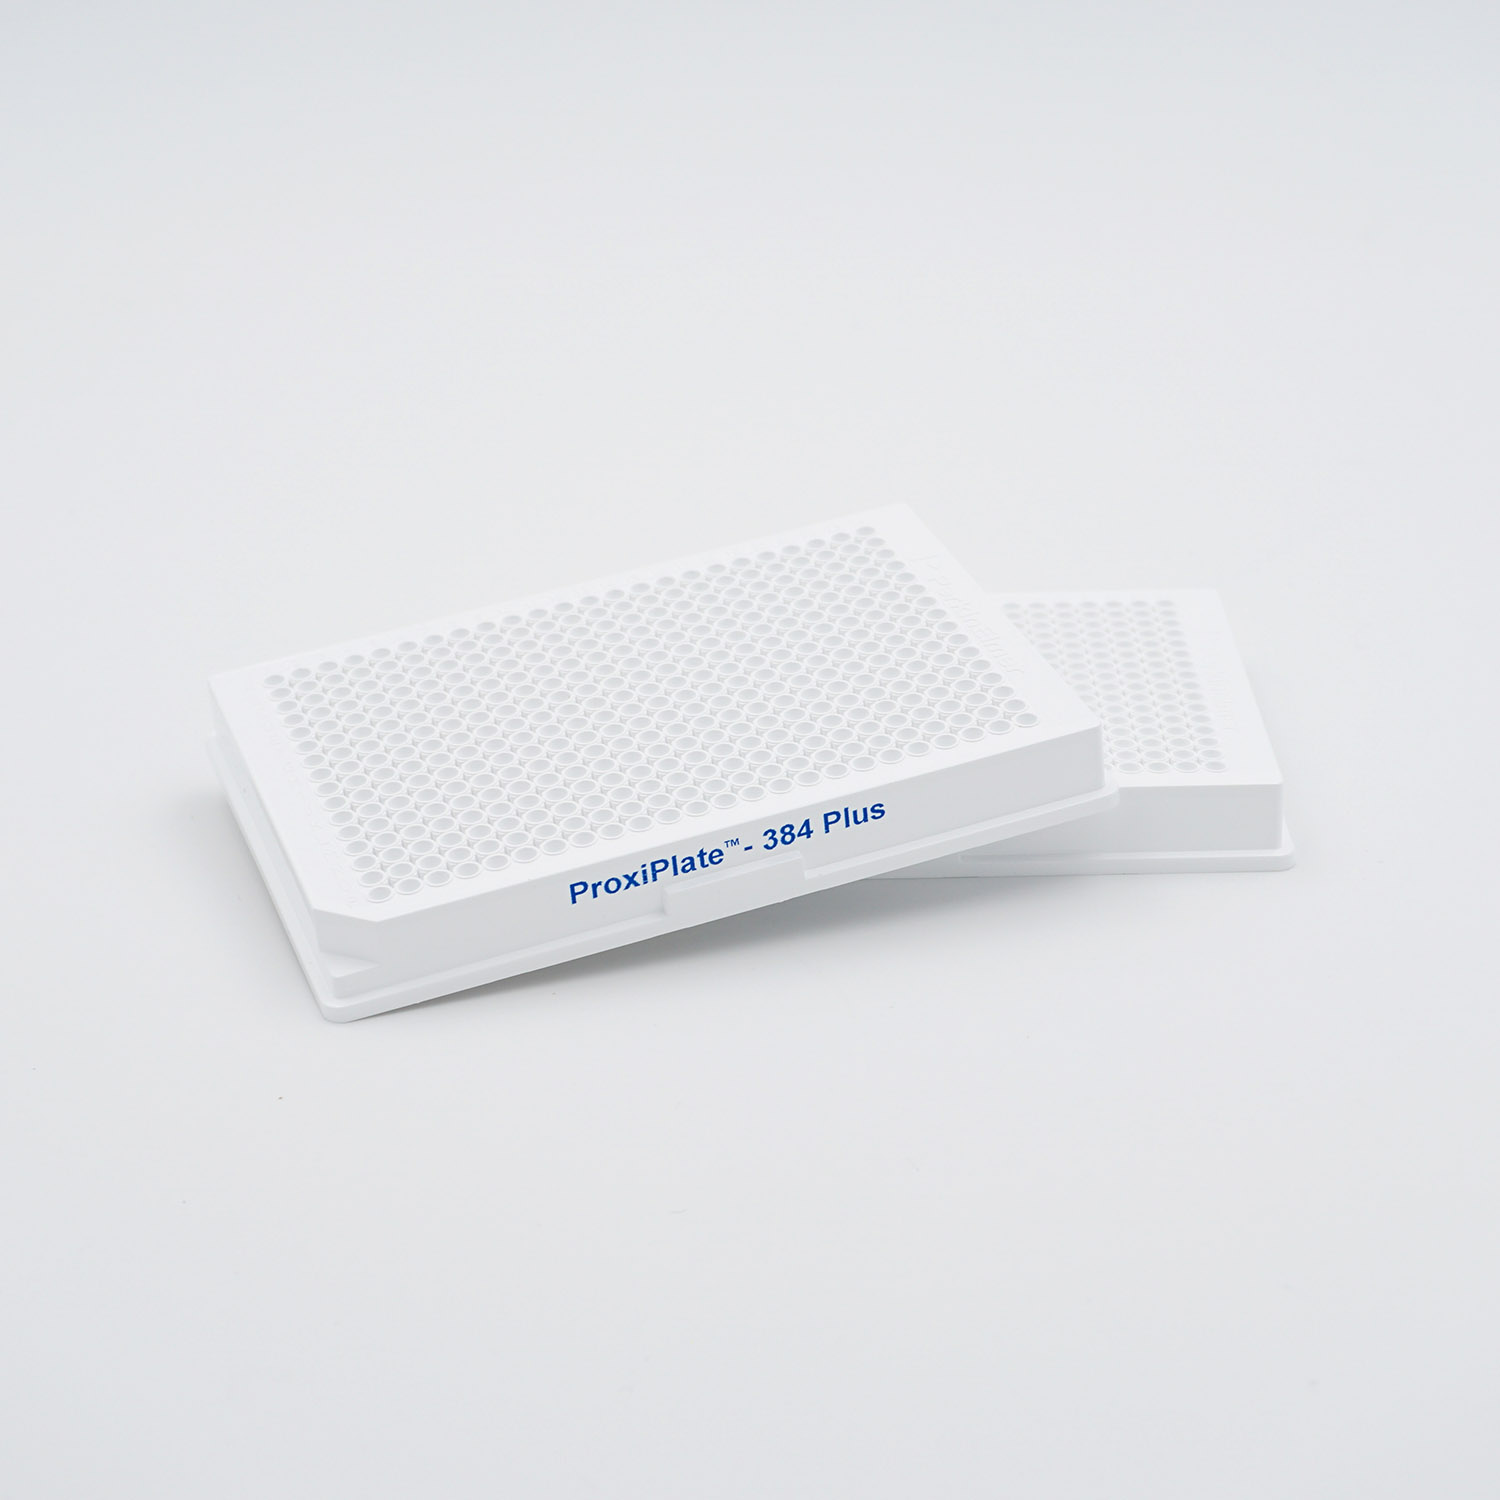 ProxiPlate-384 Plus, White 384-shallow well Microplate